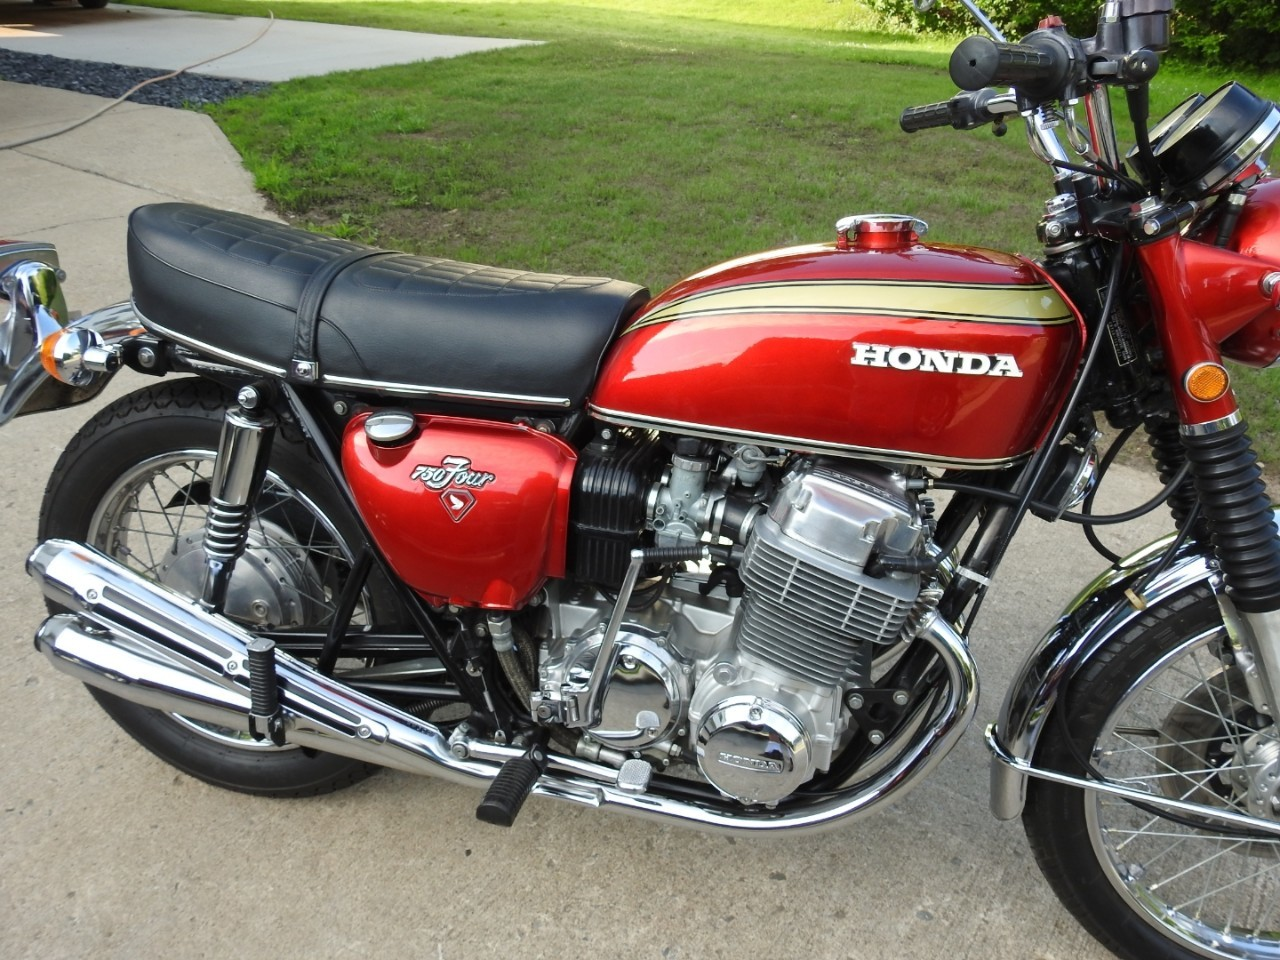 Cb 750 For Sale - Honda Motorcycle Double - Cycle Trader